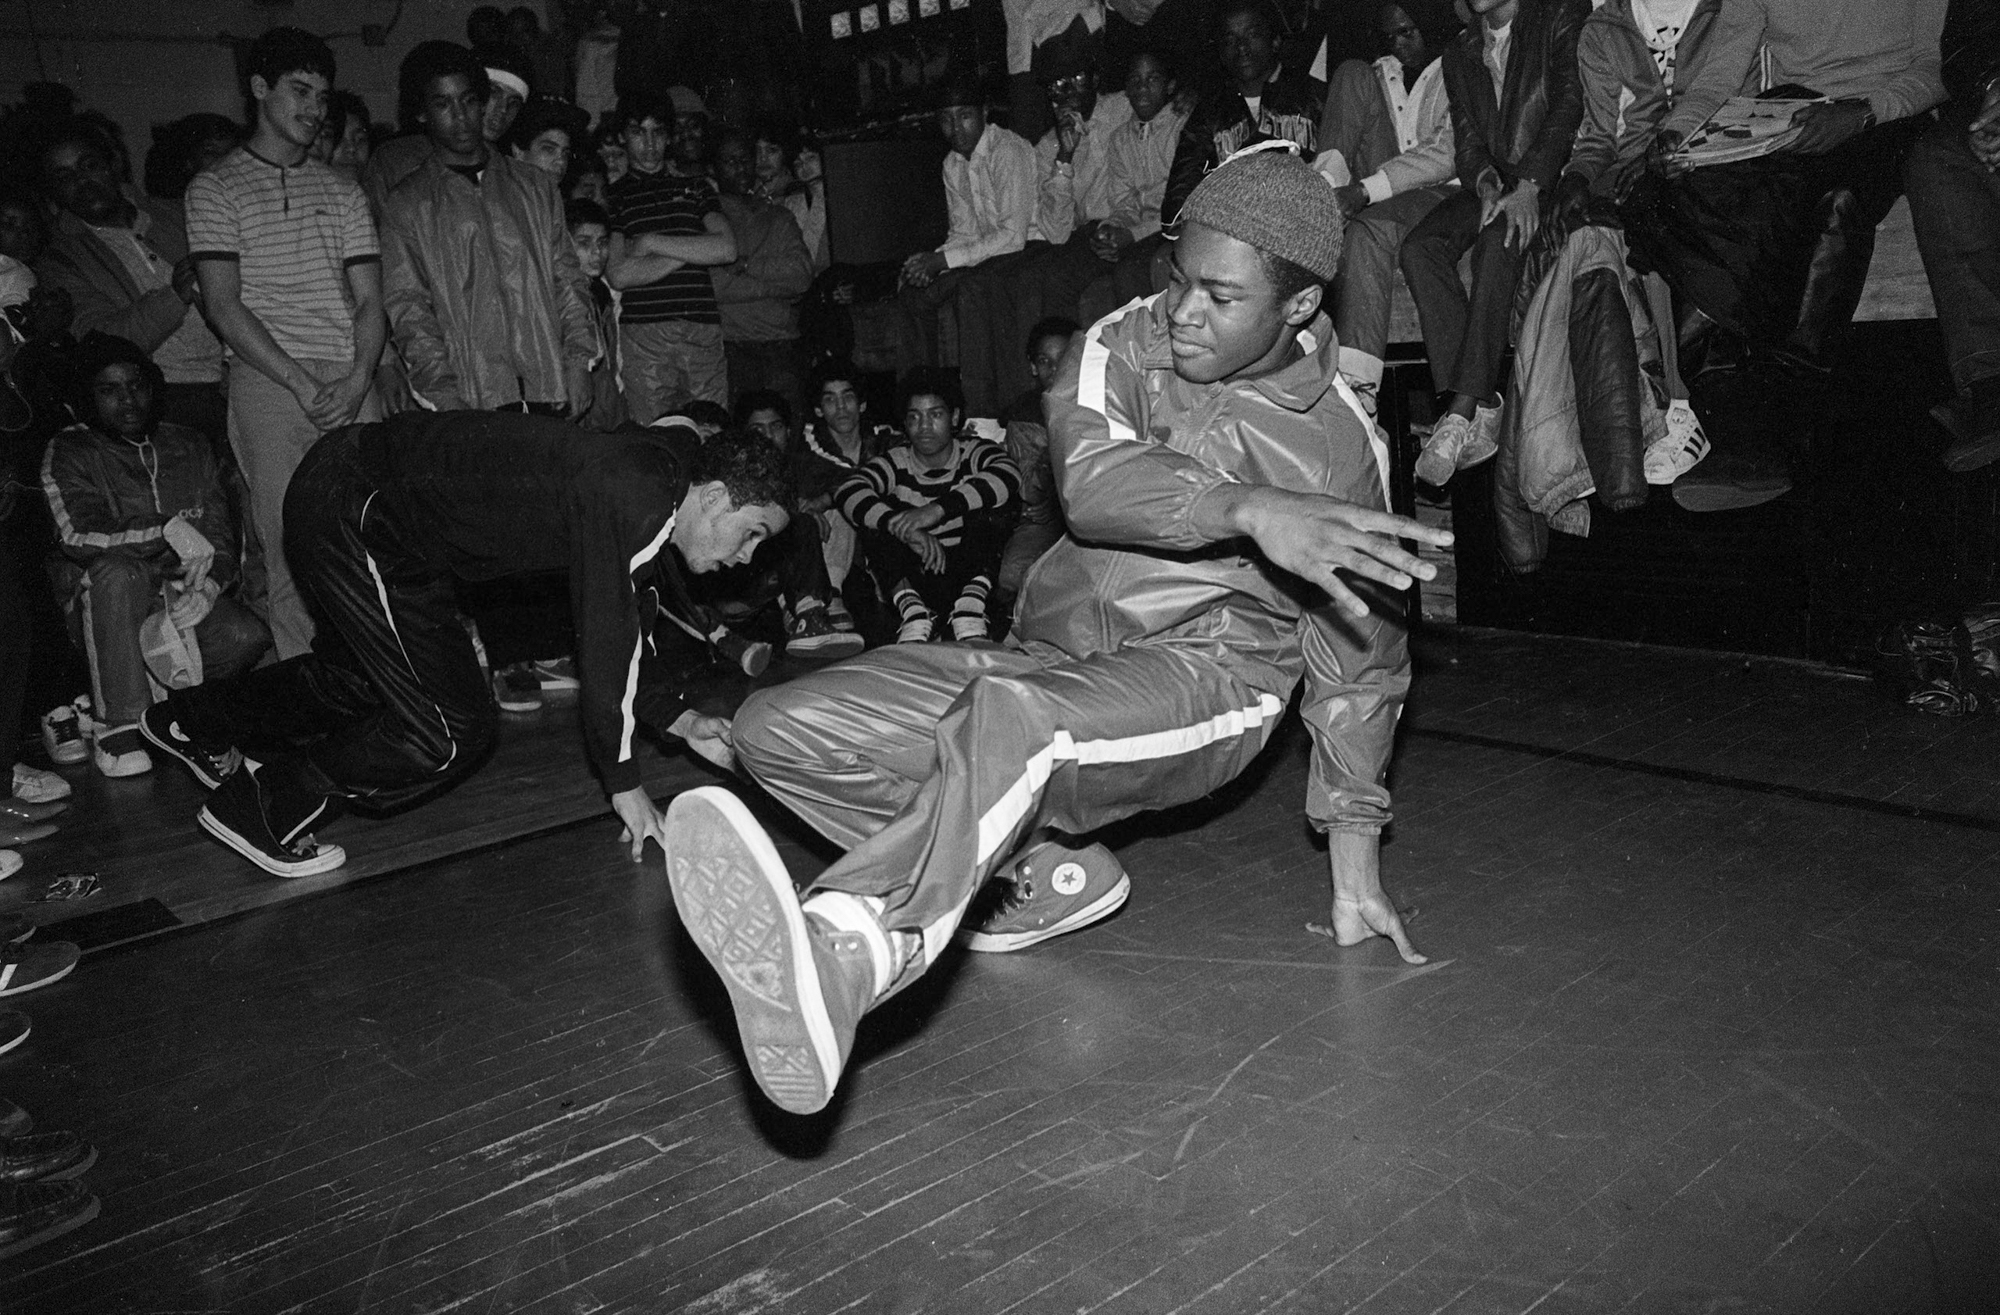 Bboy battle, South Bronx, 1984.  Photo by Ricky Flores